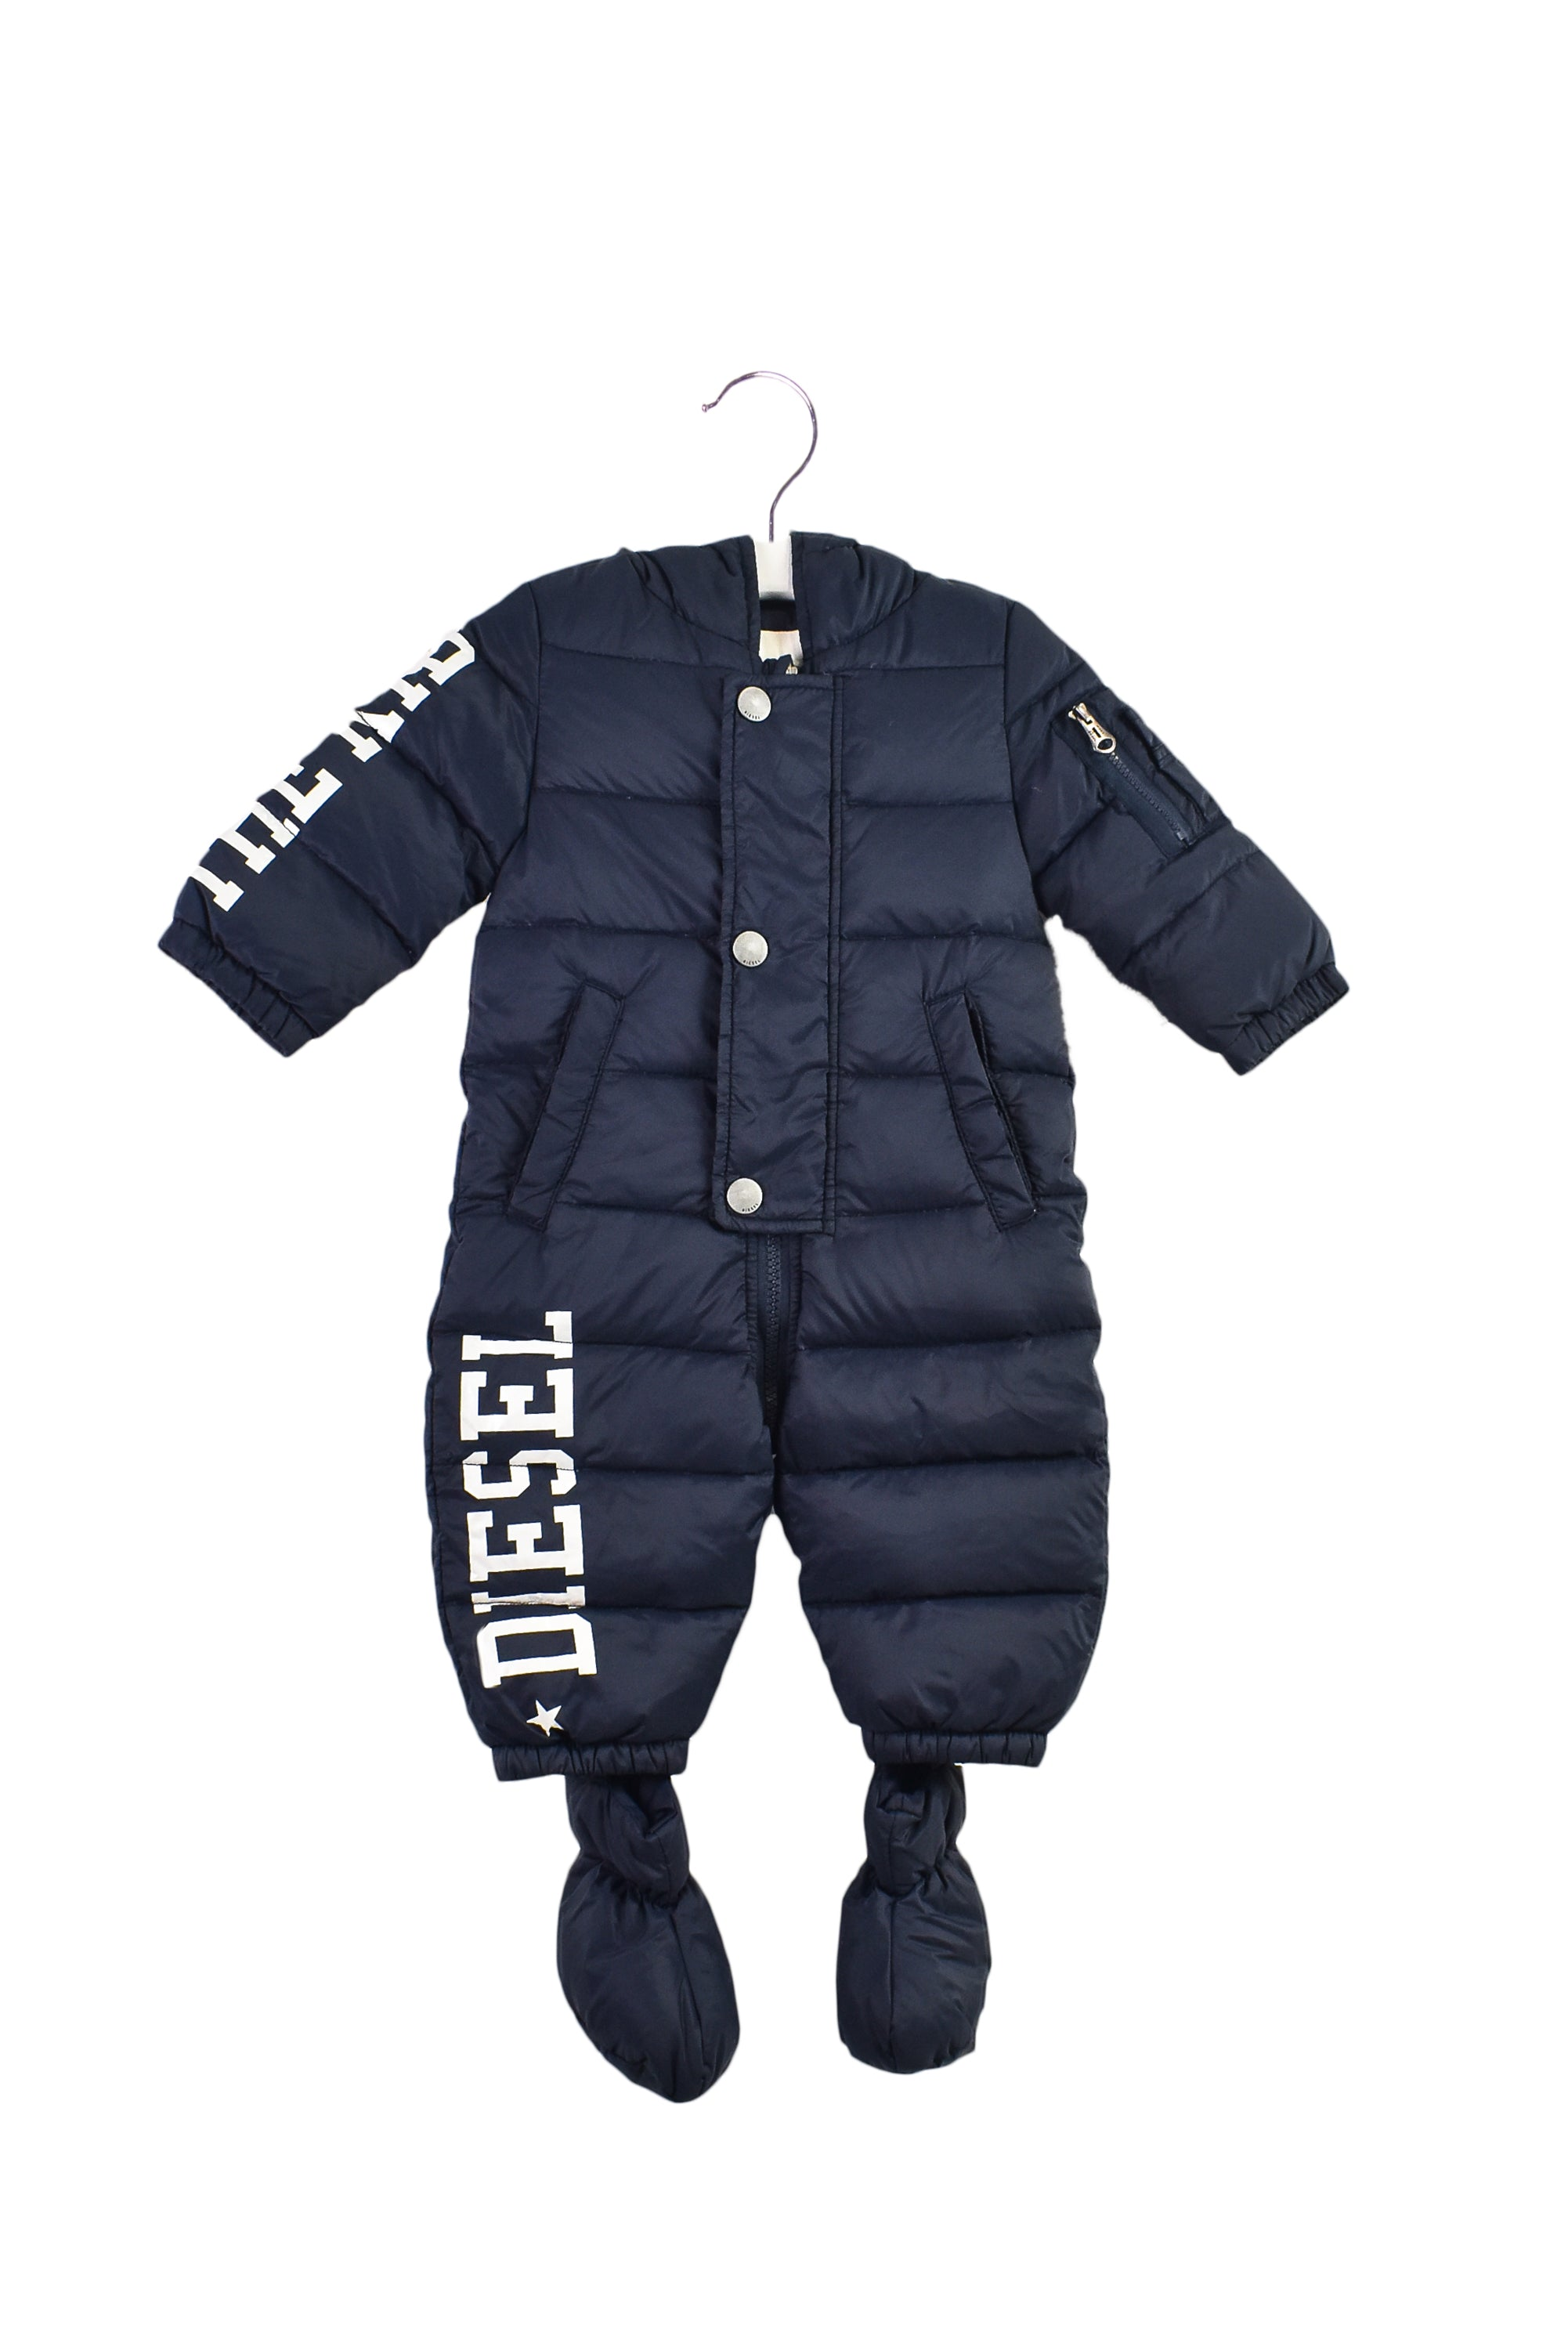 10032277B Diesel Baby~Puffer Jumpsuit 6M at Retykle